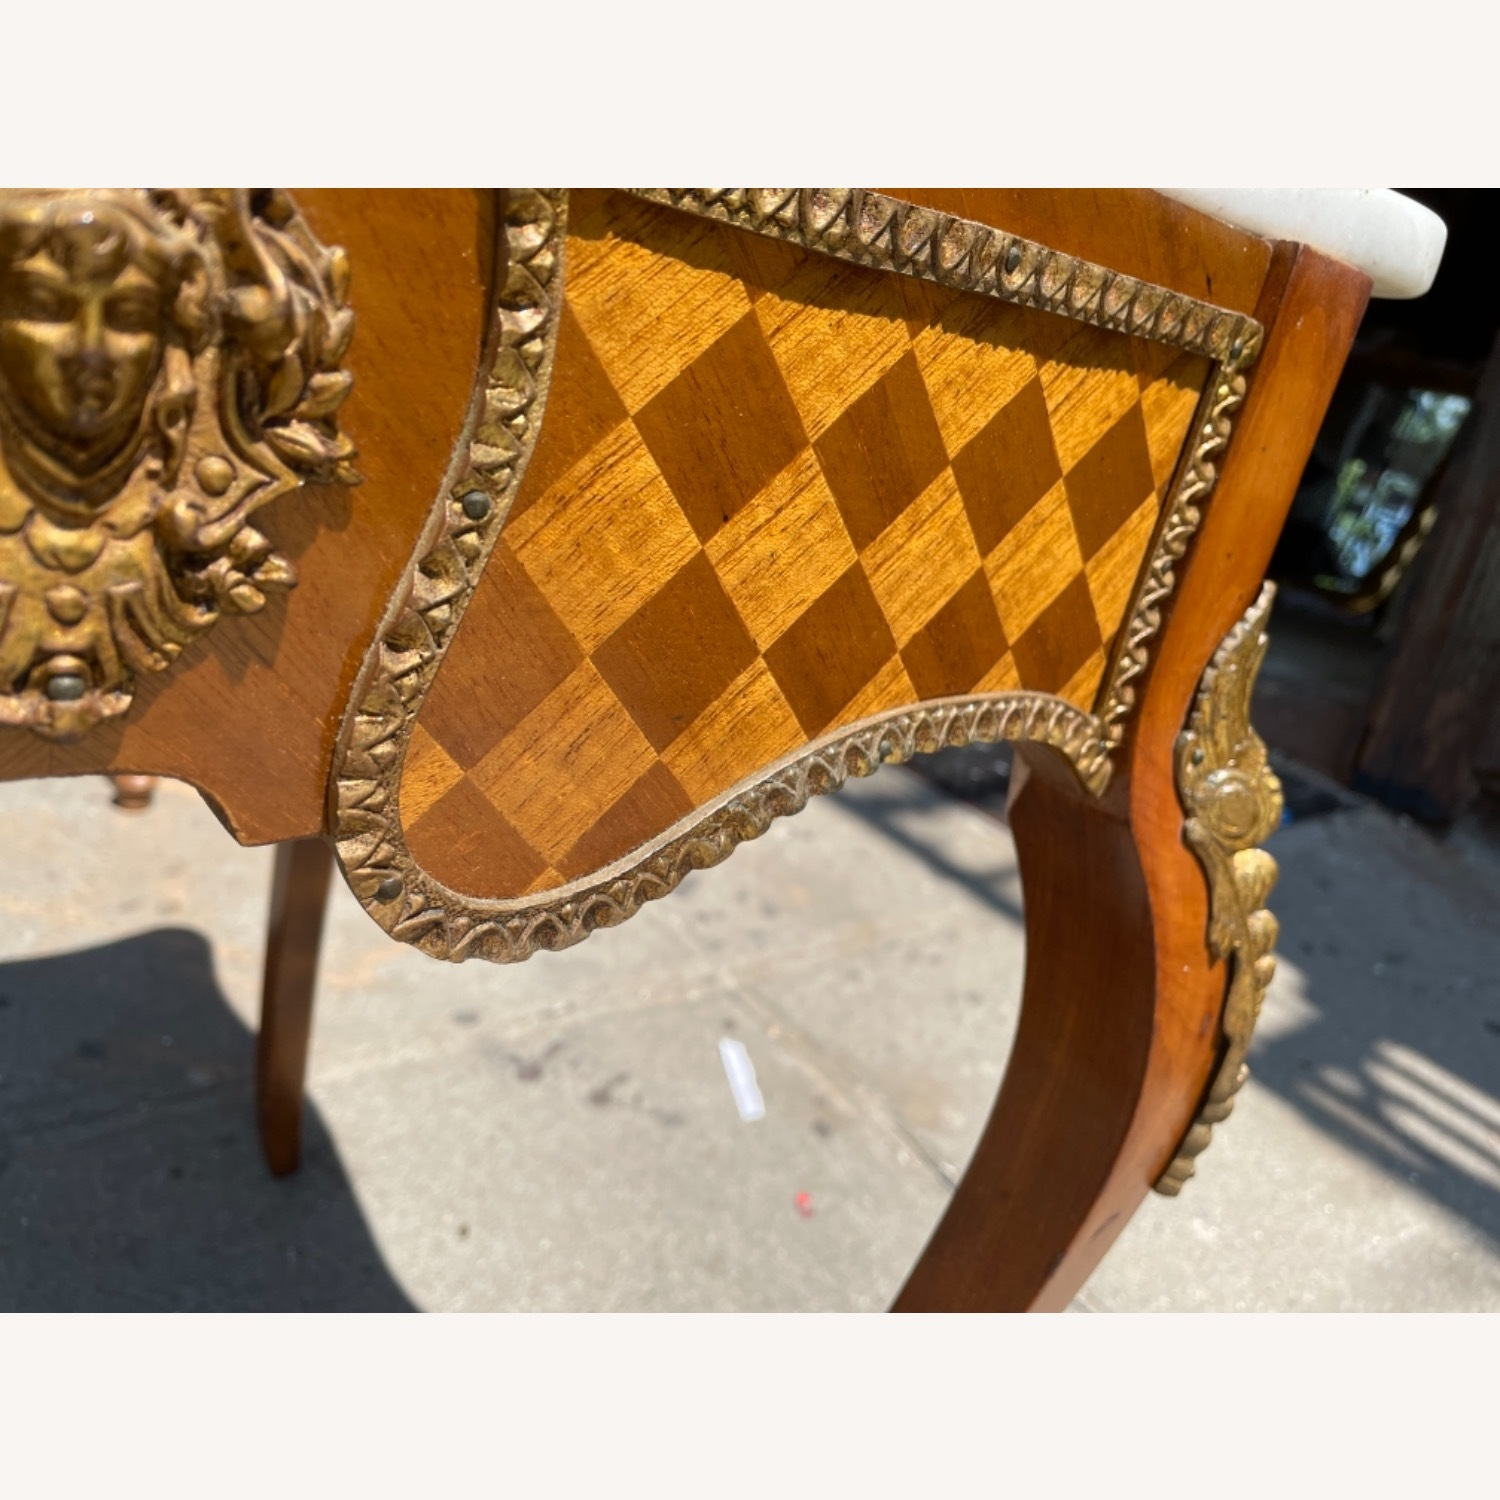 Antique 1930s Italian Marble & Brass Inlaid  Table - image-12